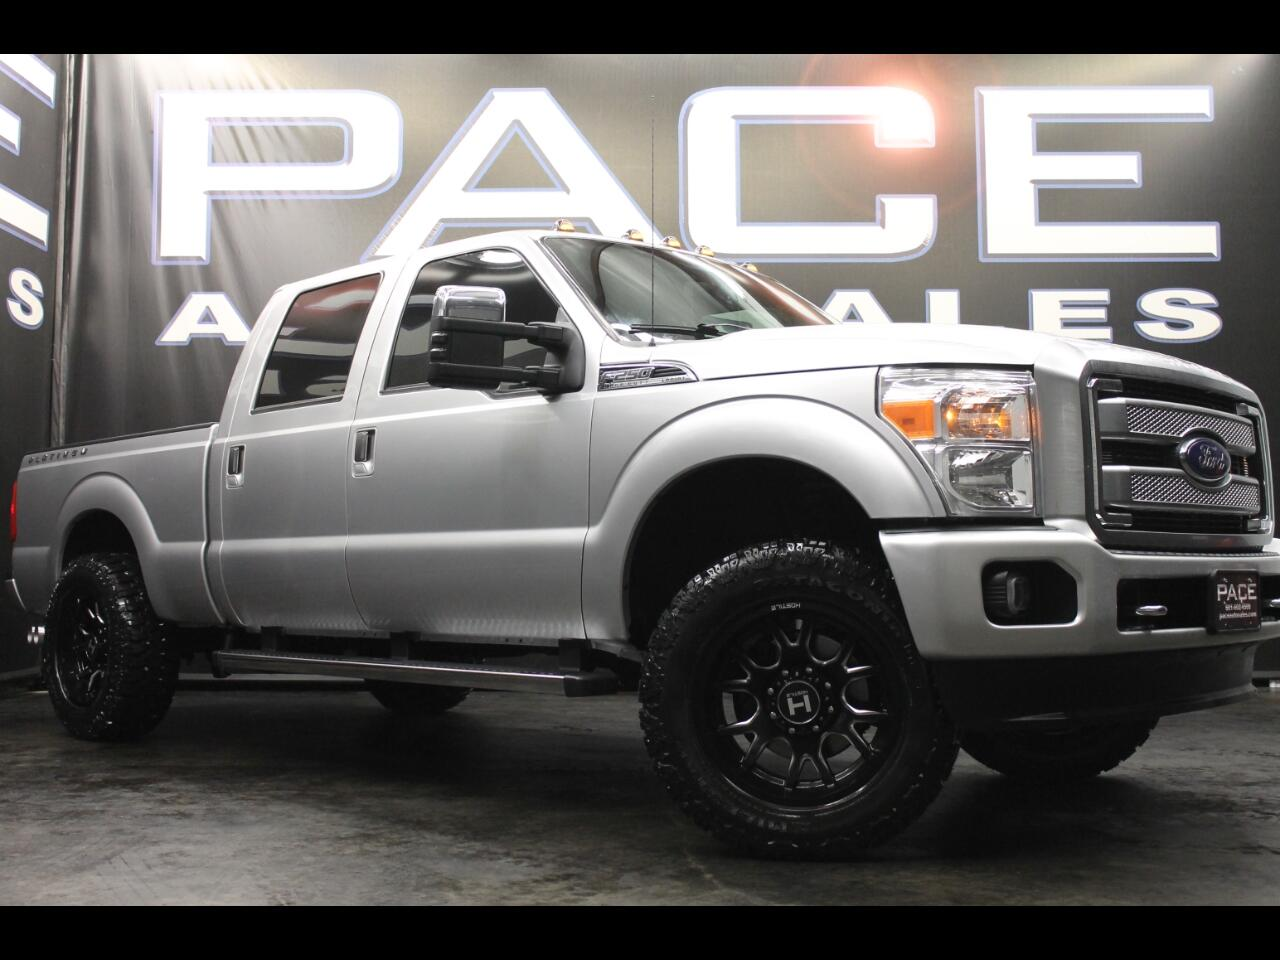 2016 Ford Super Duty F-250 SRW 4WD Crew Cab Platinum Leveled Custom